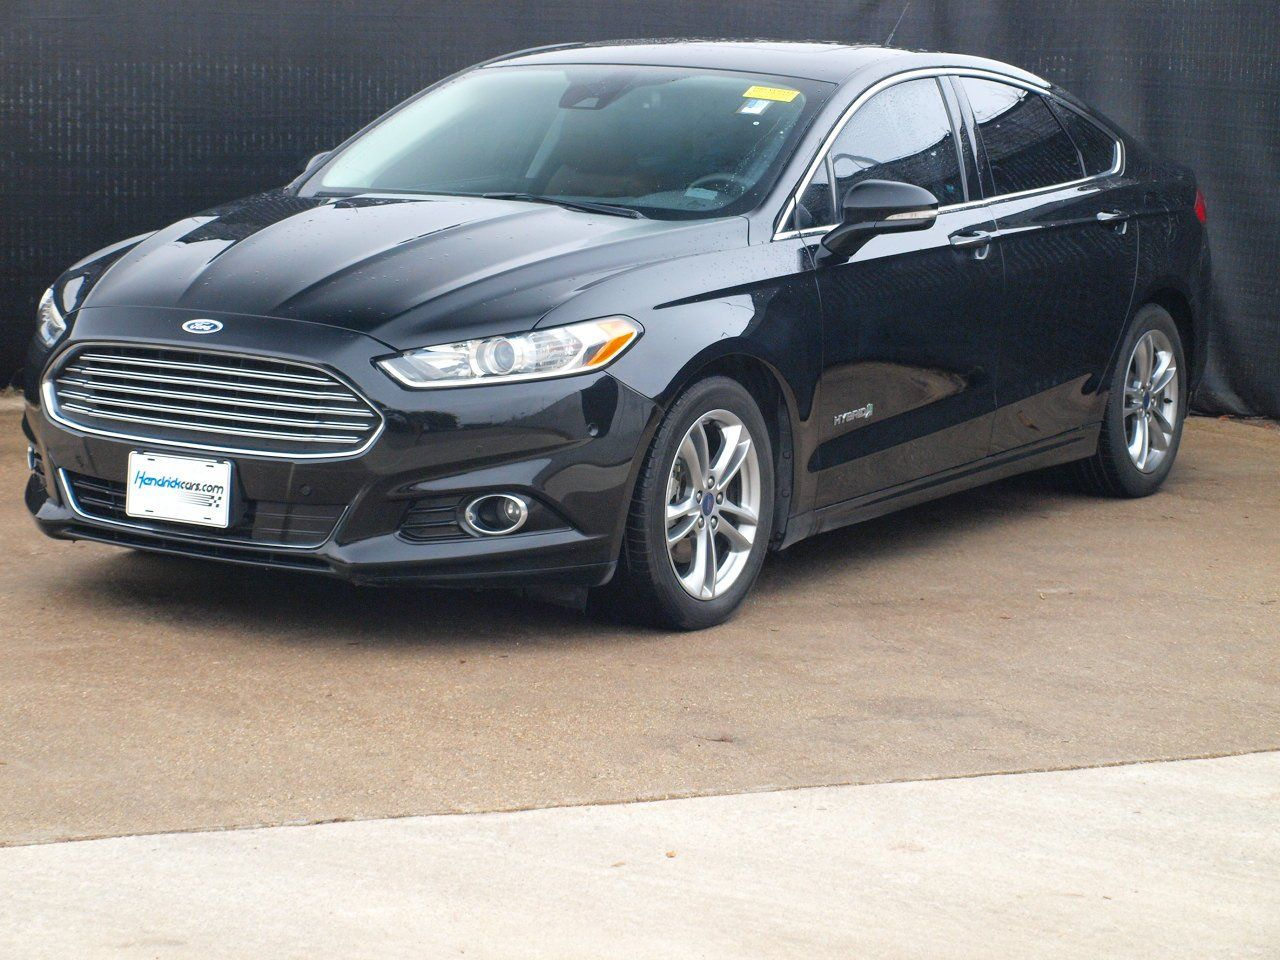 Luxury 2012 Ford Fusion Hybrid Battery Life